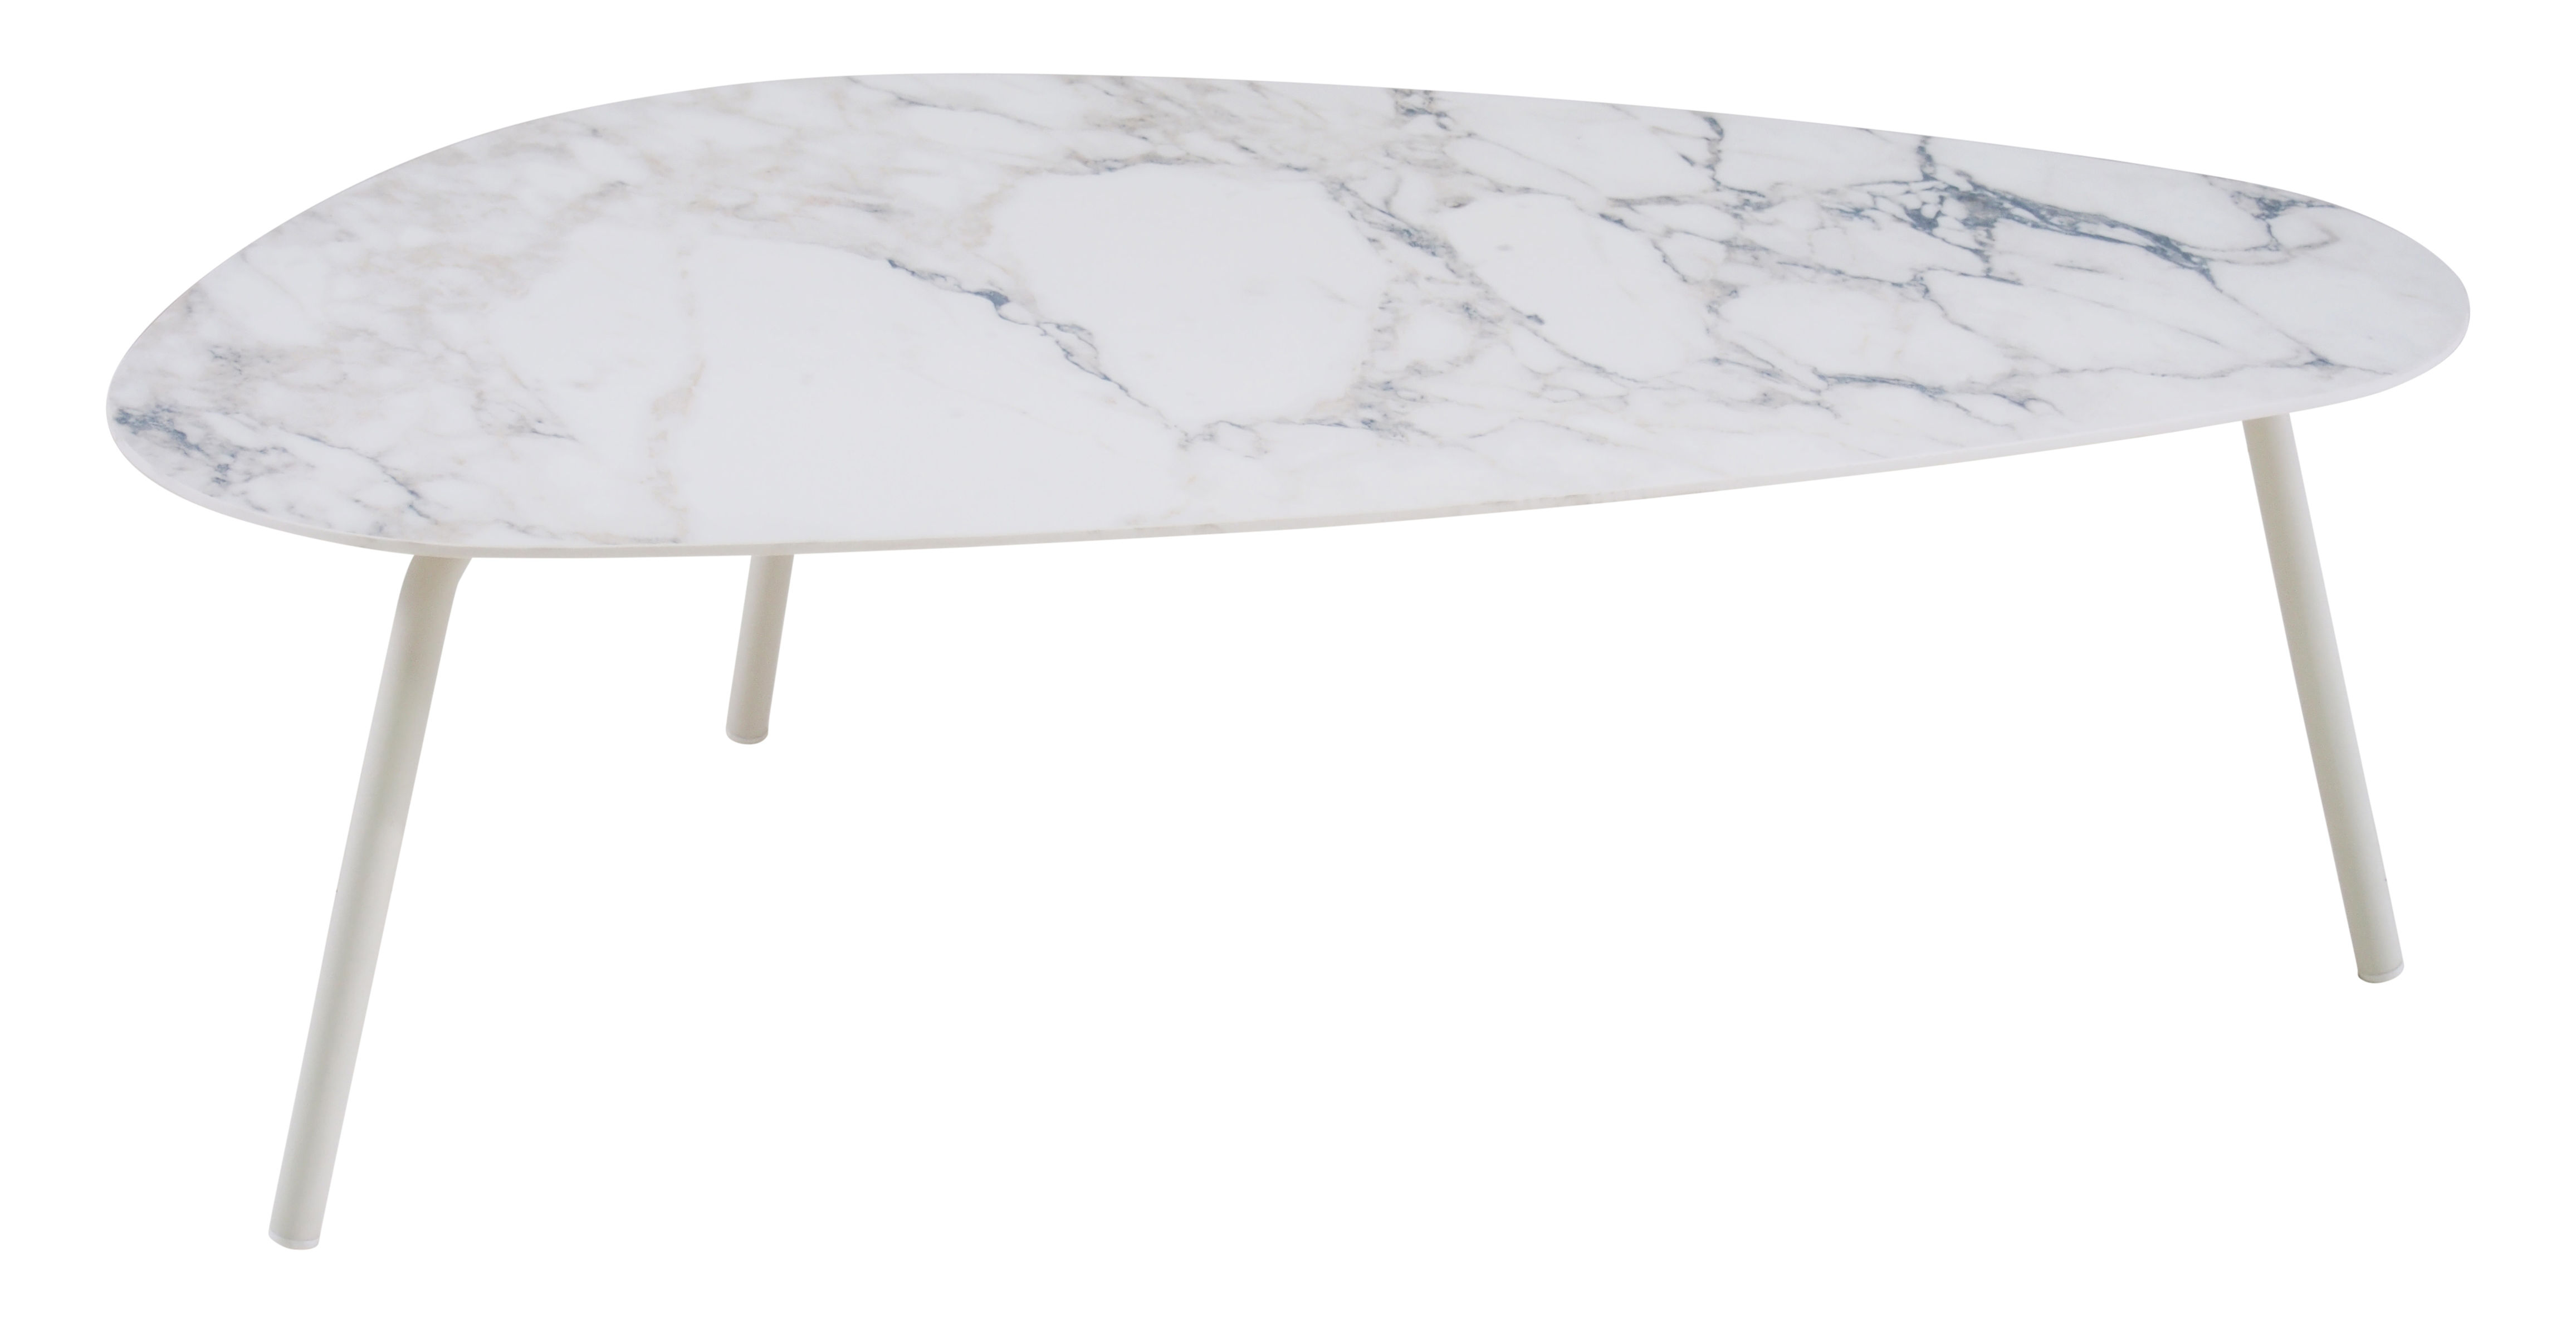 Furniture - Coffee Tables - Terramare Coffee table - Porcelain stoneware - L 108 cm by Emu - White marble effect / White legs - Stoneware, Varnished aluminium